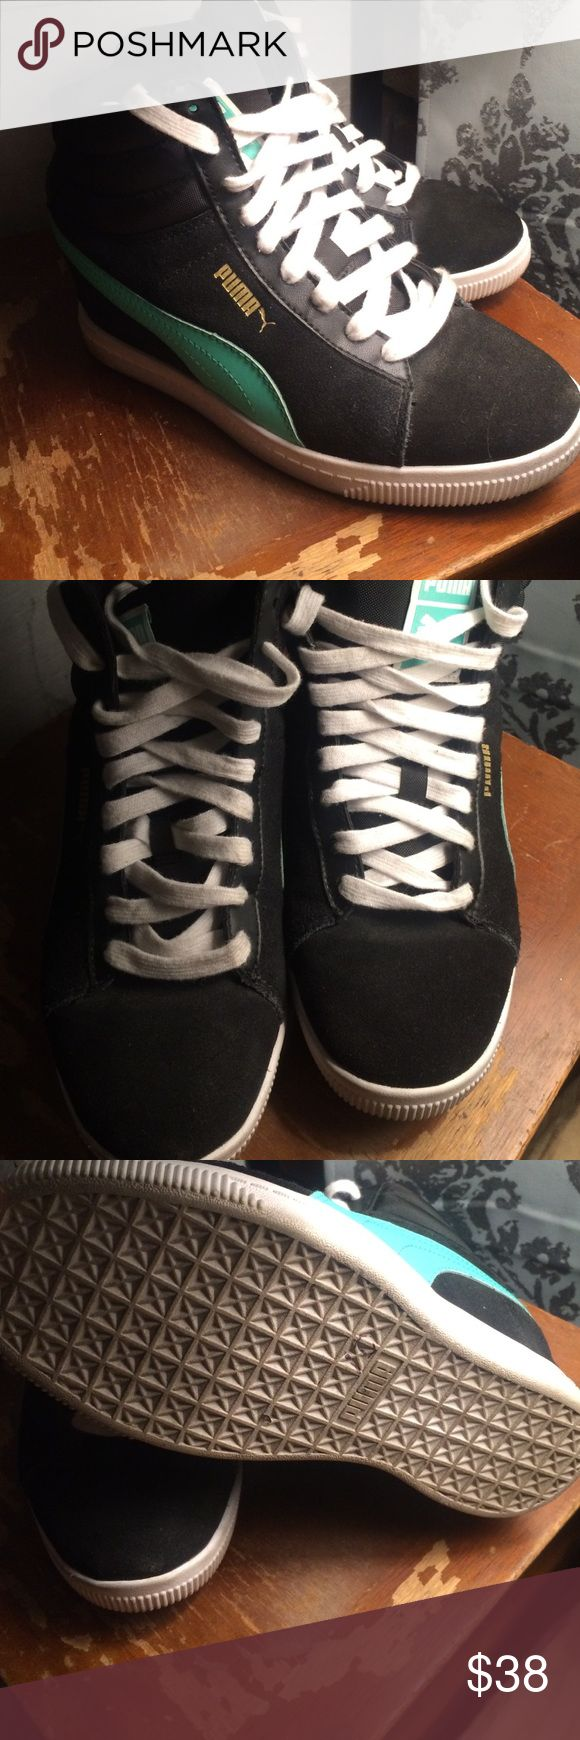 Puma women sneakers ankle Beautiful ankle puma sneakers size 5.5 in good condition. Puma Shoes Sneakers